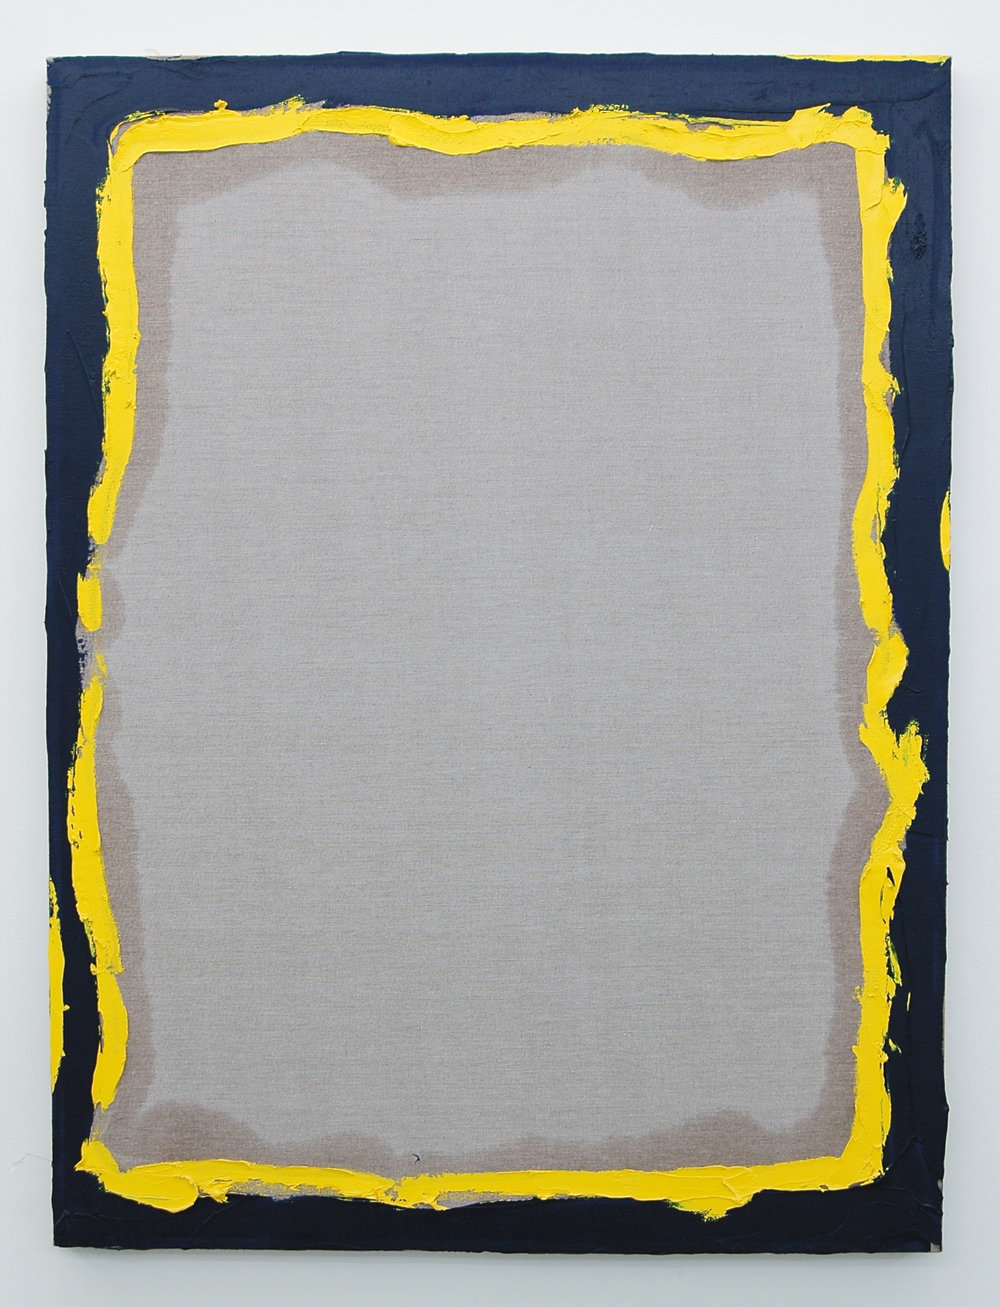 "/SLASH/  Peter Kirkeby,  Untitled,  oil and rabbit skin glue on linen, 40"" x 30"", 2013"